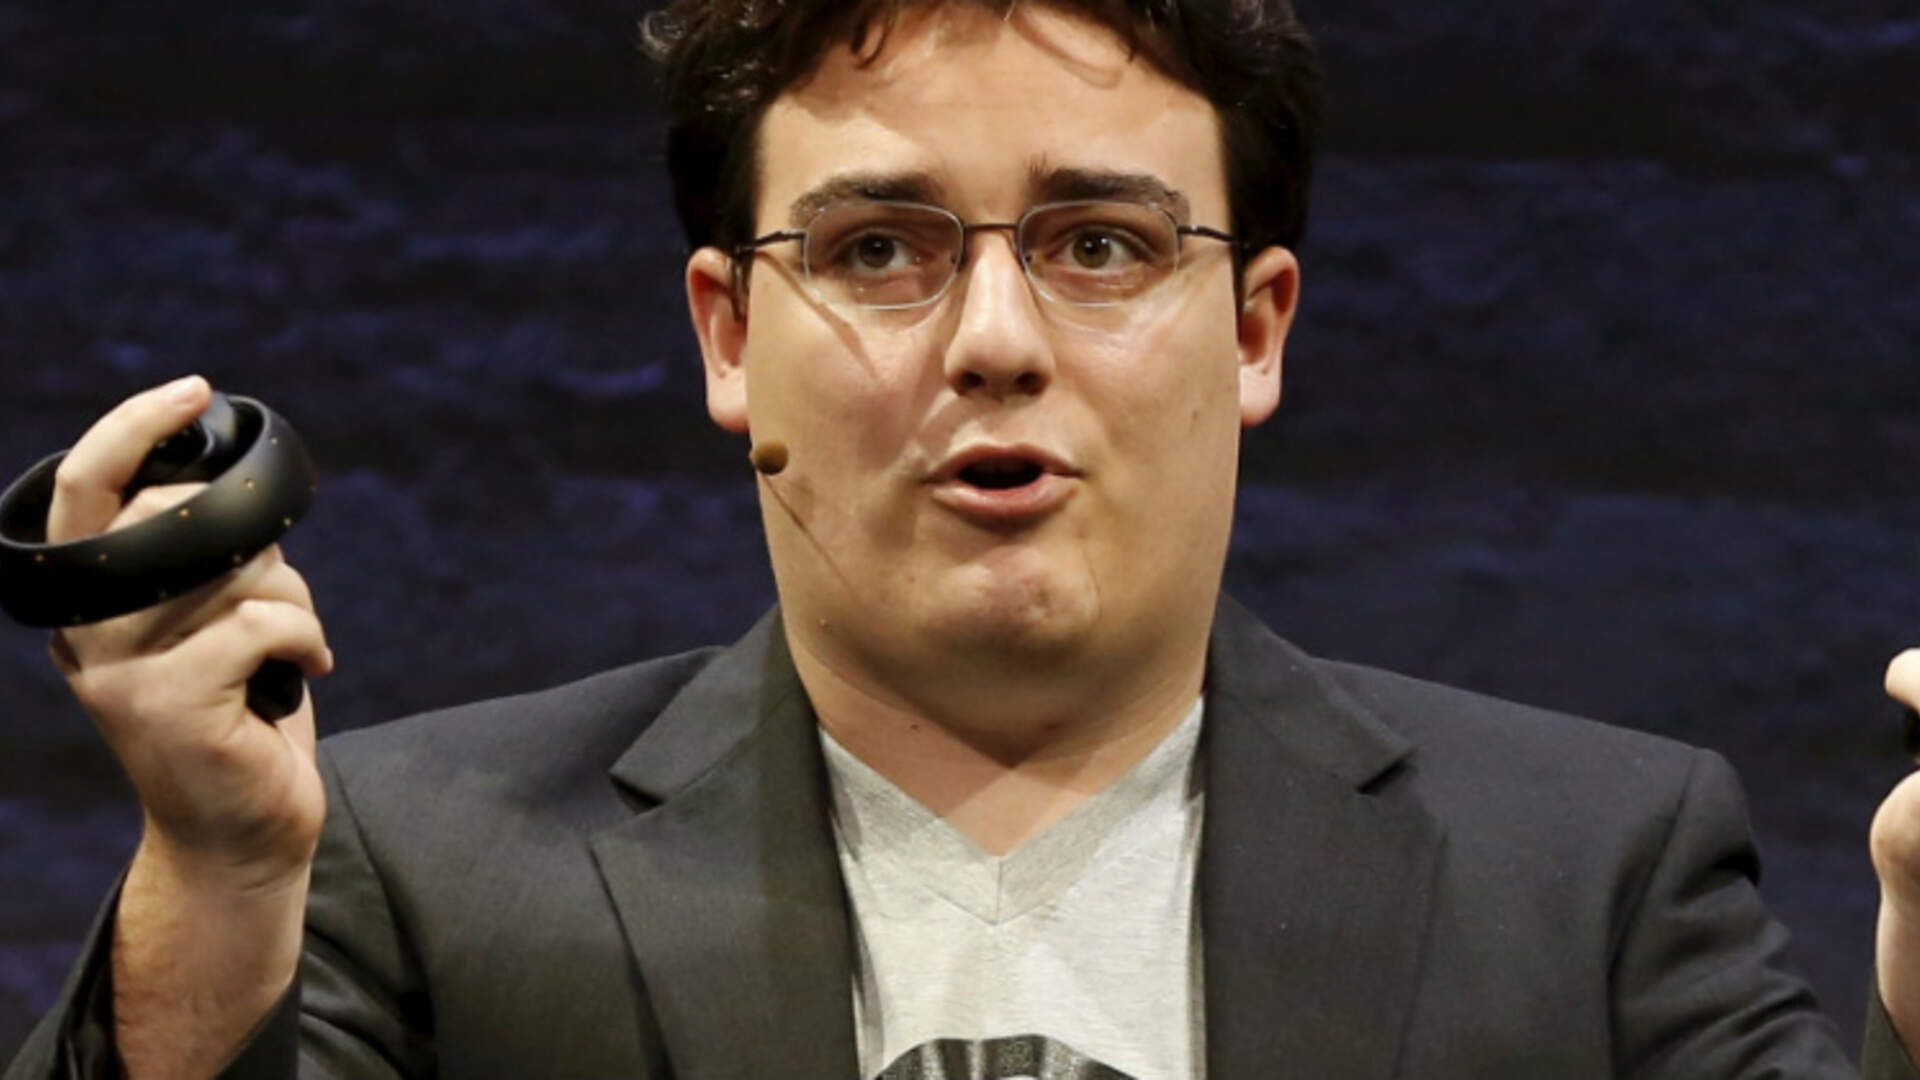 Oculus Founder Leaves Facebook